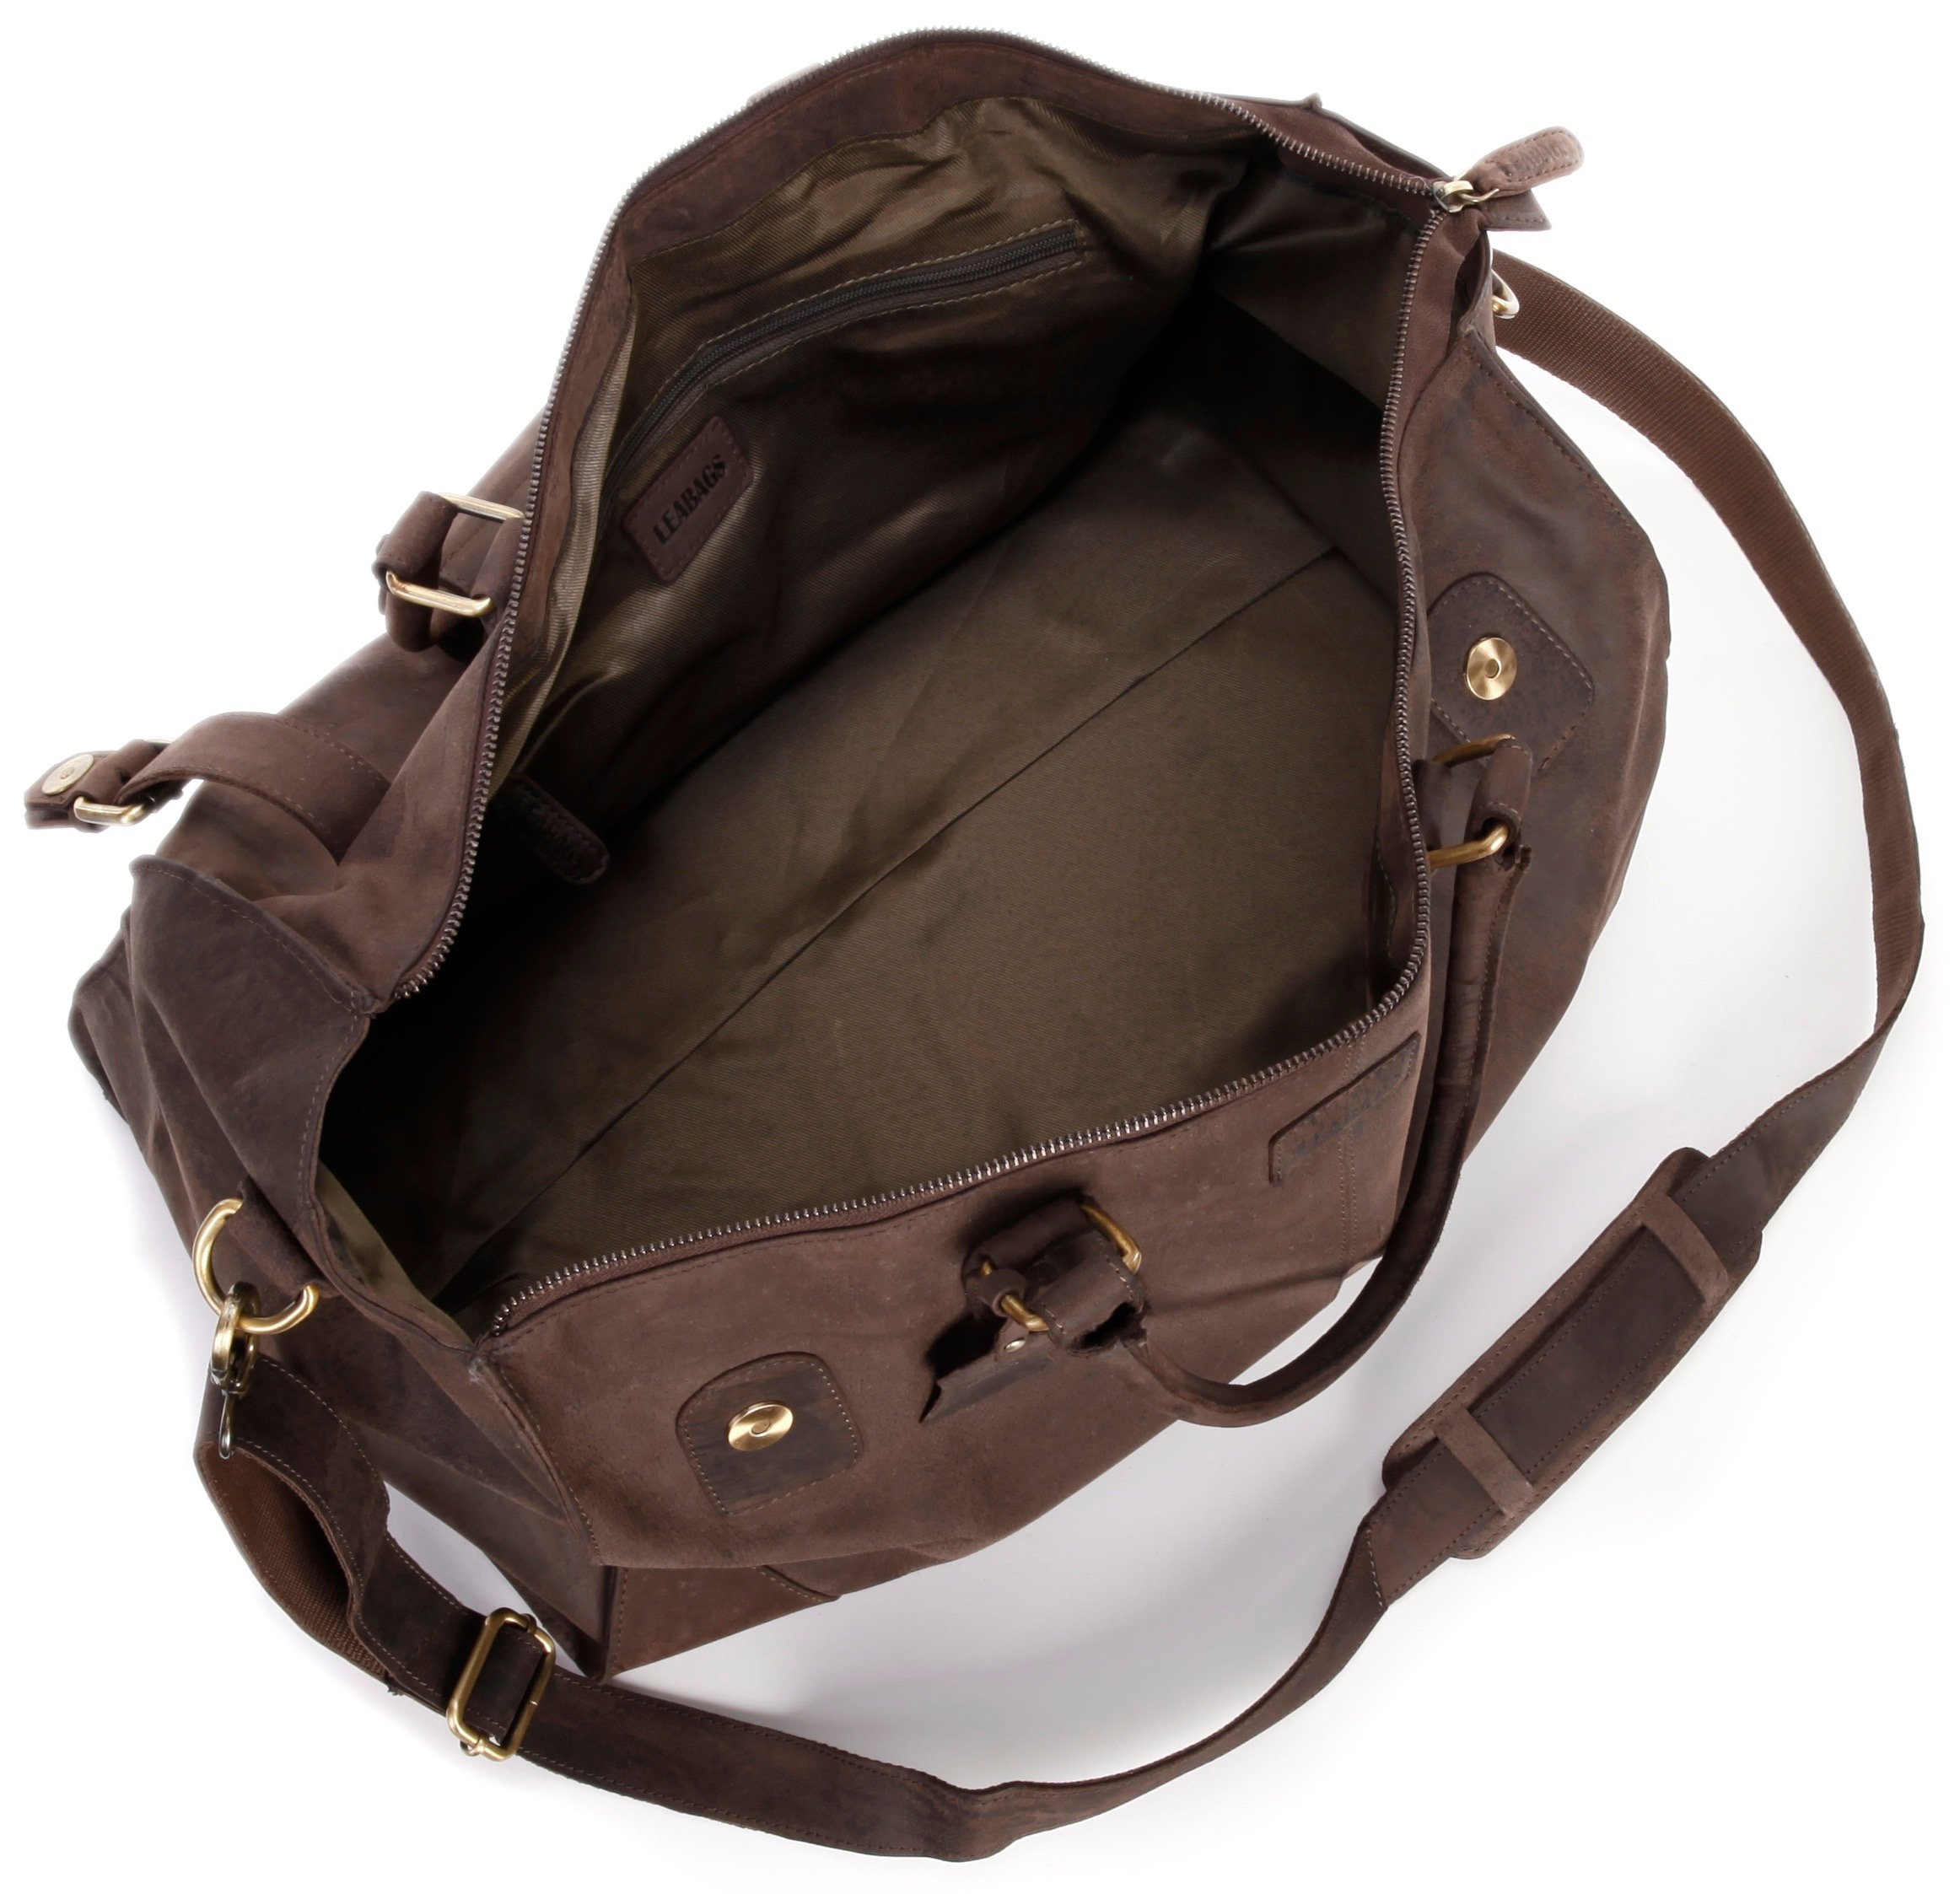 LEABAGS Durham genuine buffalo leather duffle bag in vintage style - Nutmeg by LEABAGS (Image #7)